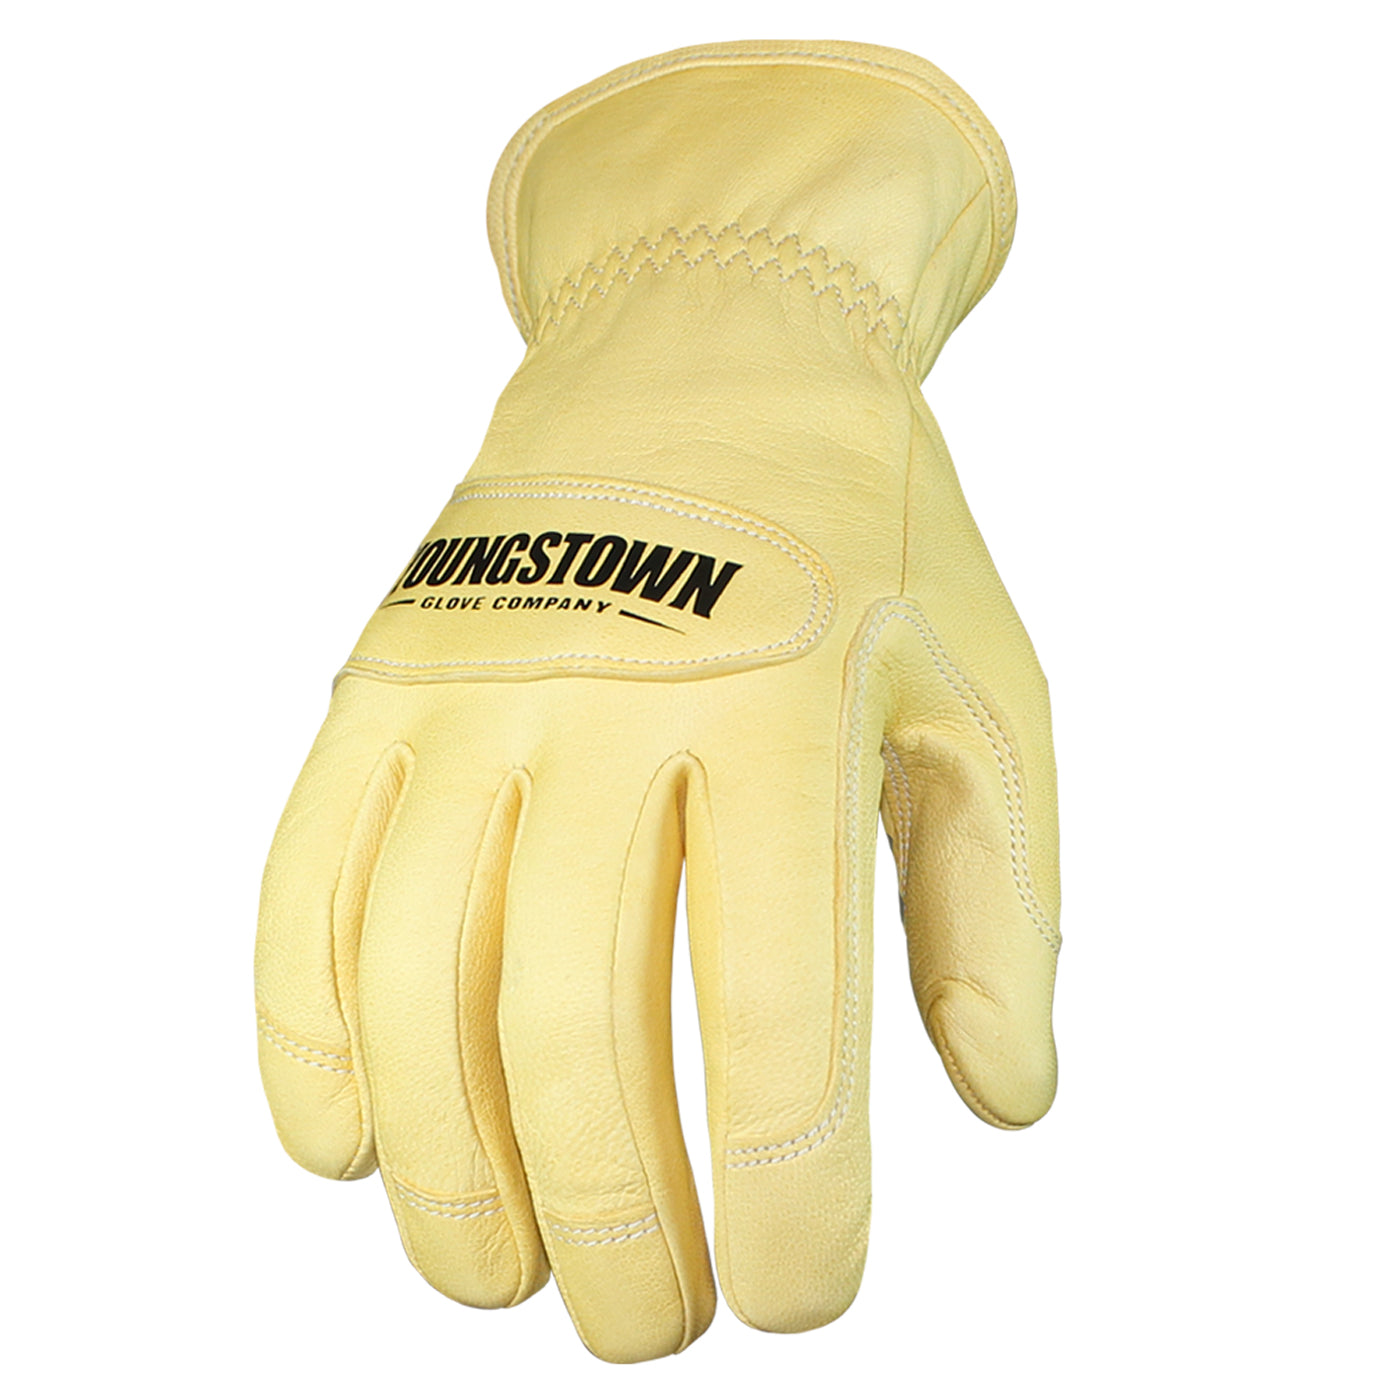 12-3265-60 Youngstown Ground Glove - Main image